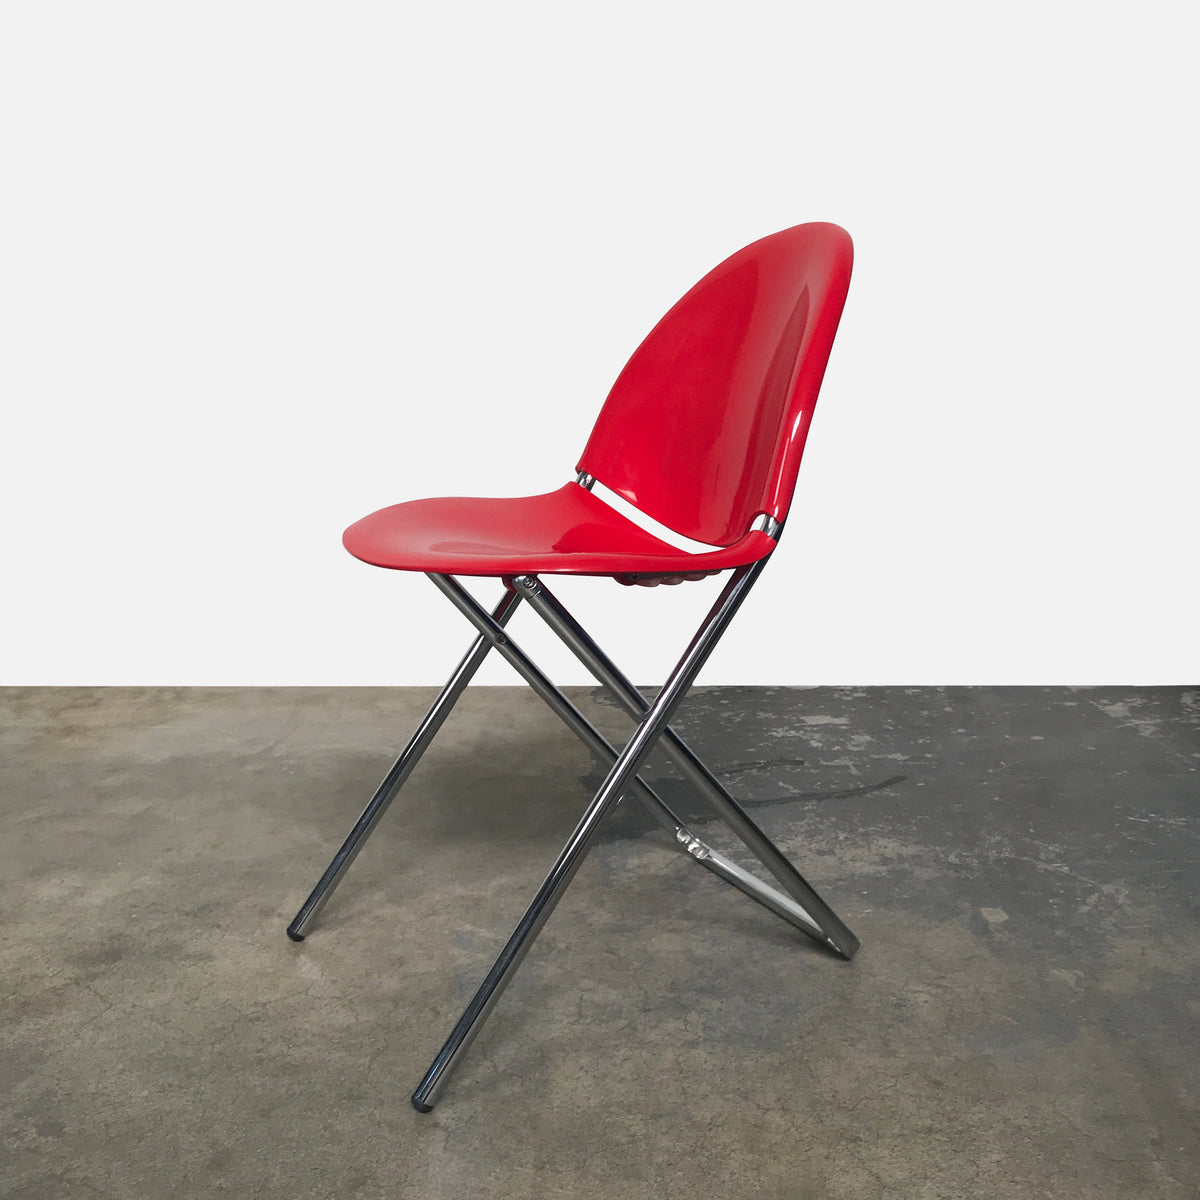 Swell Fol D Folding Chair Red Gmtry Best Dining Table And Chair Ideas Images Gmtryco